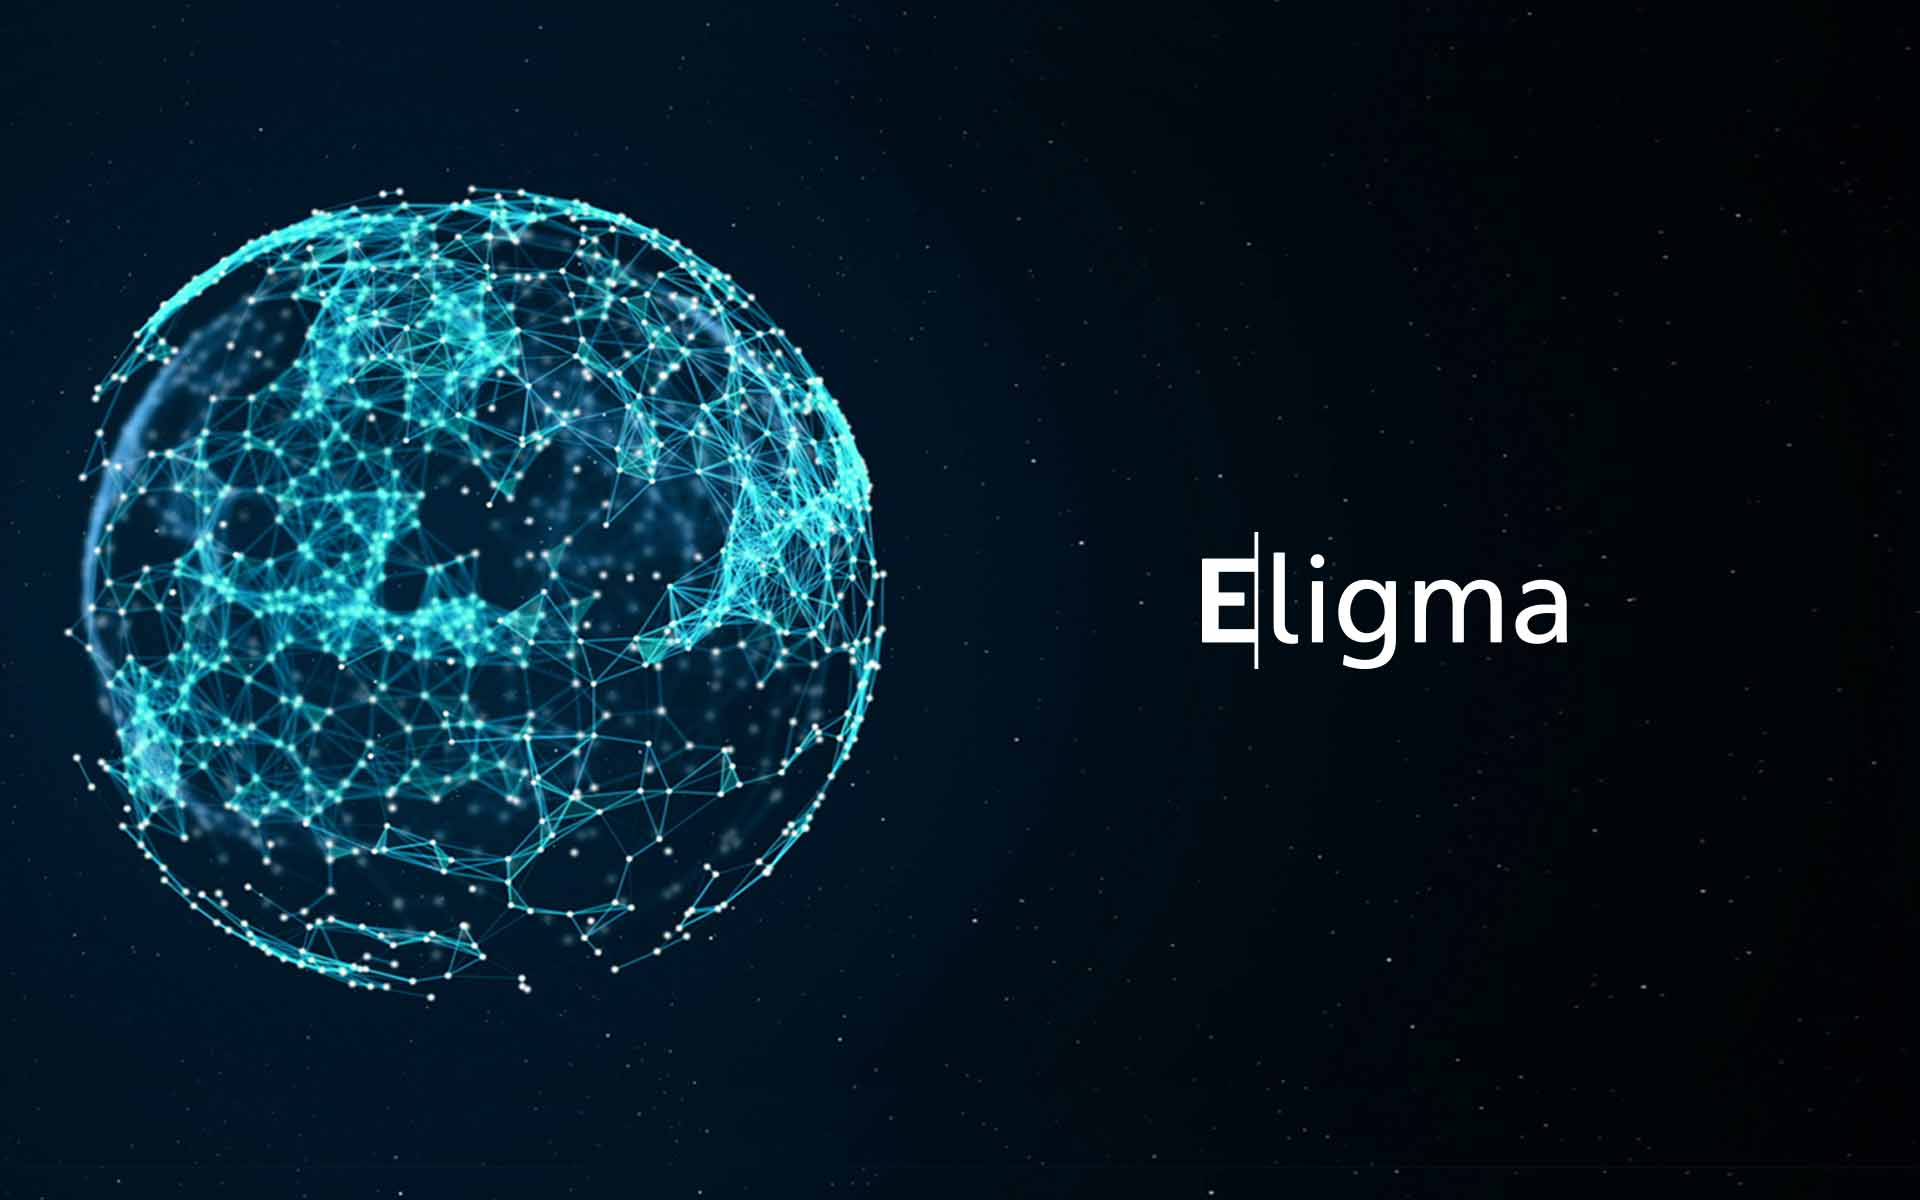 Eligma, an AI-Driven Blockchain Platform That Is About to Change Online the Shopping Experience